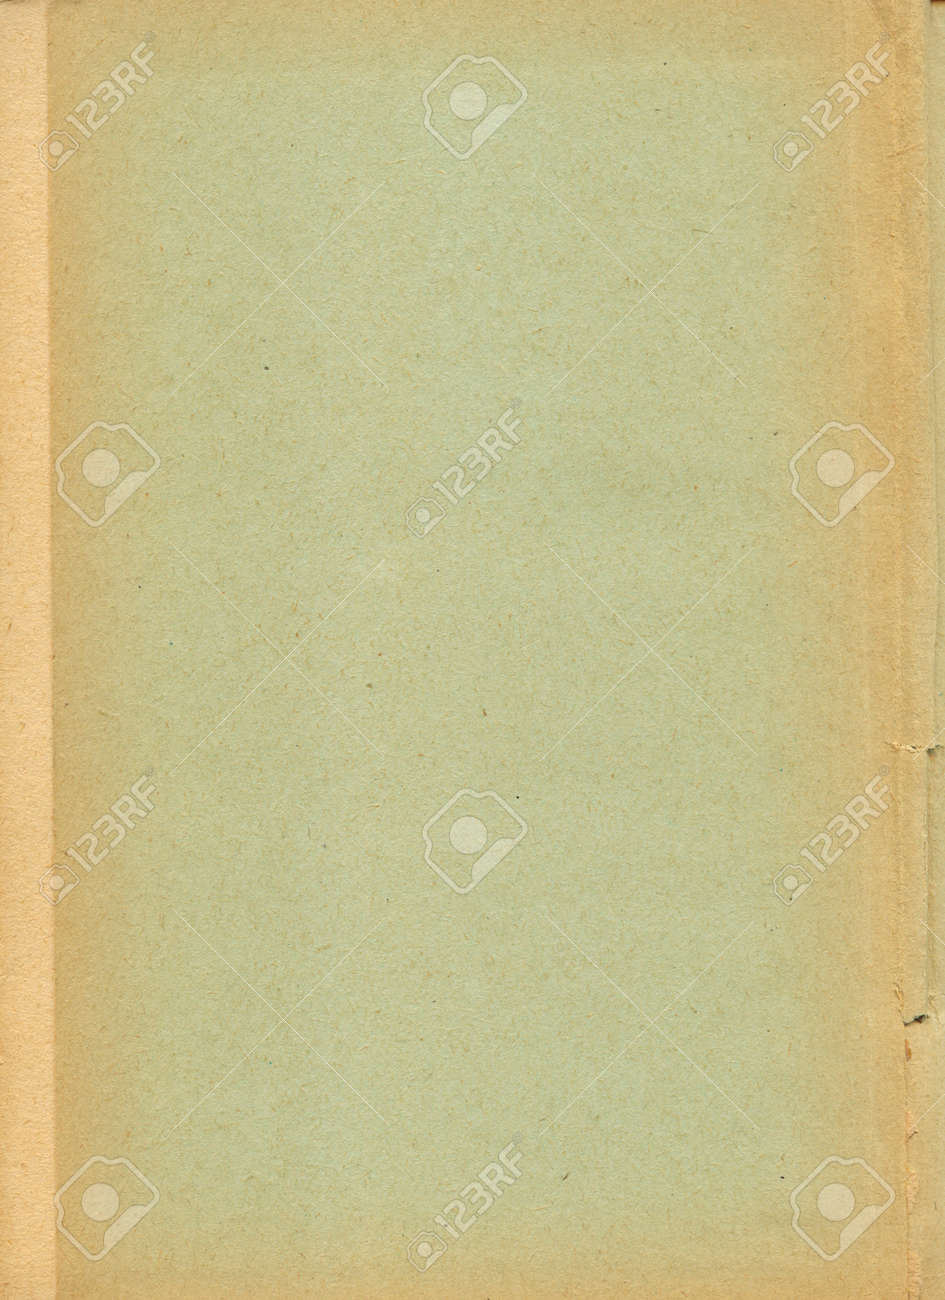 Old paper grunge background Stock Photo - 7810883